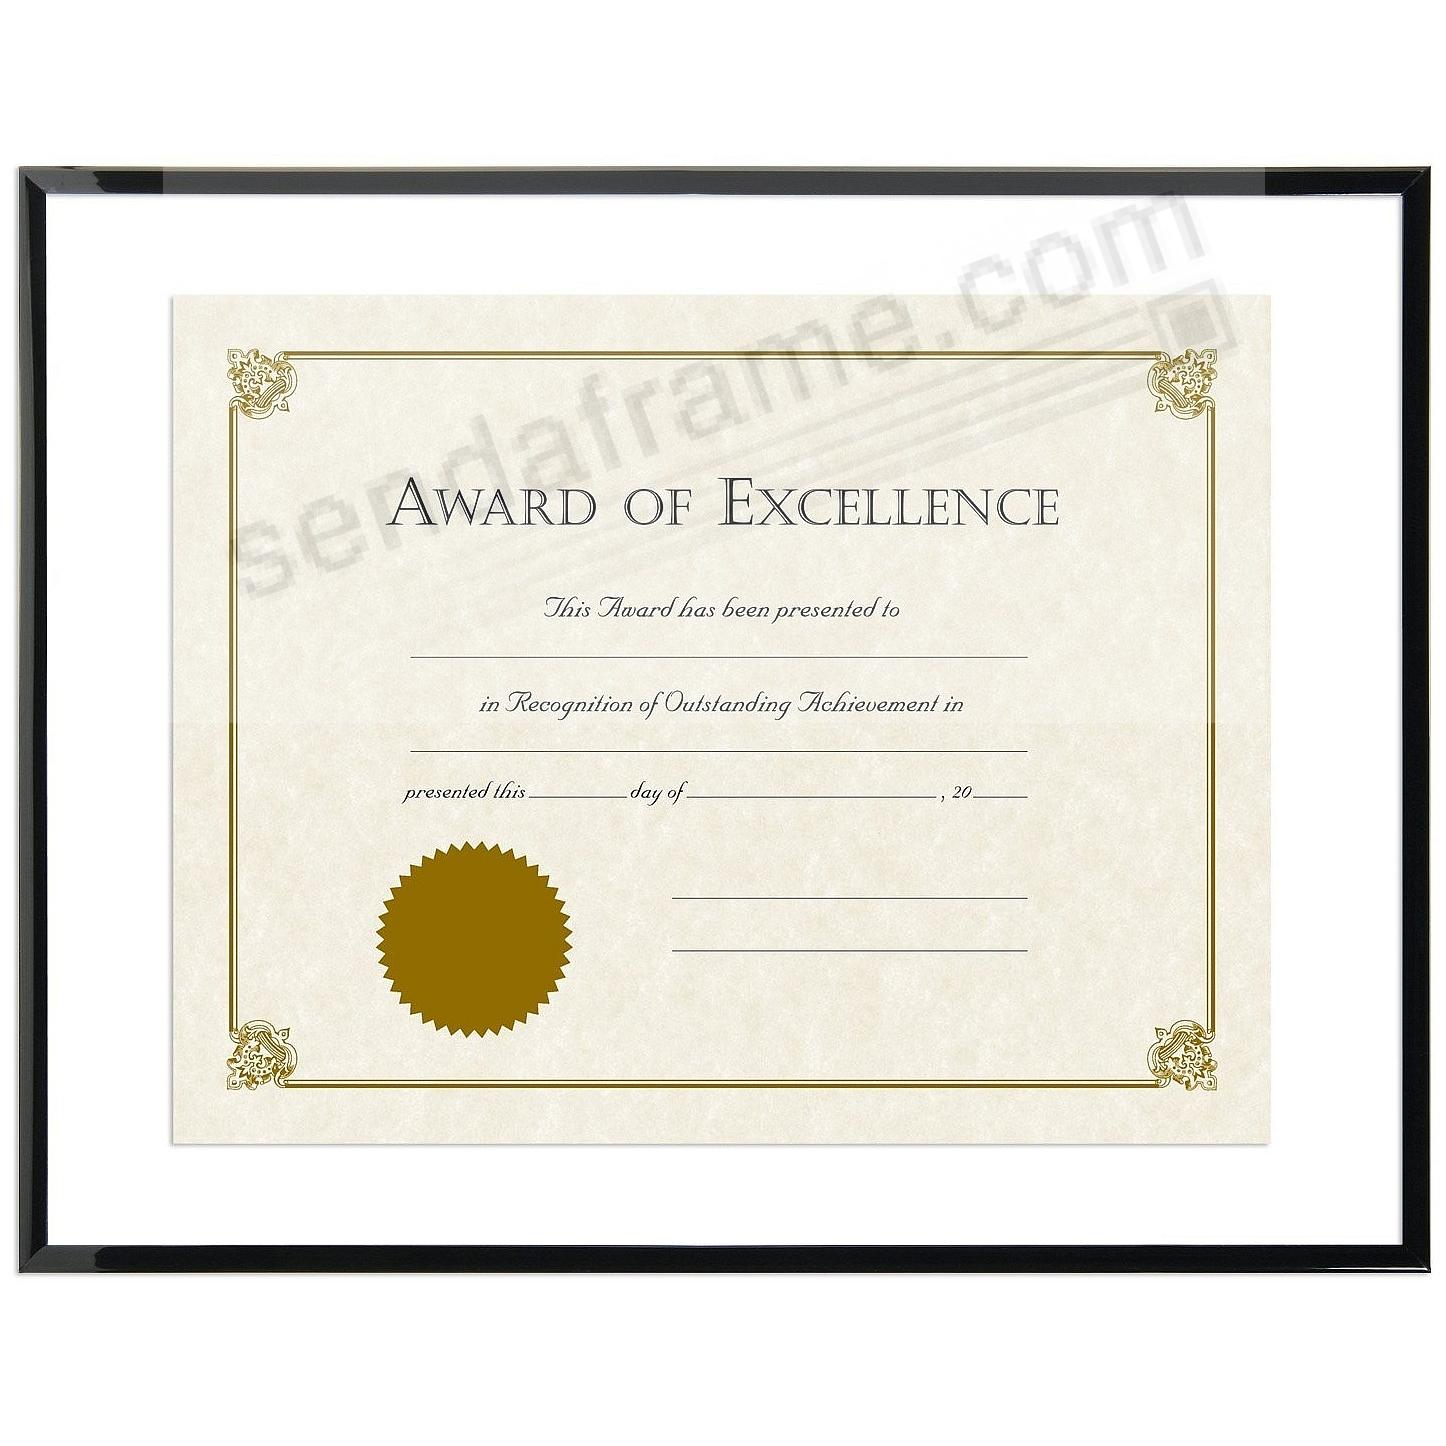 FLOAT Certificate frame 14x11/11x8½ Black ABS plastic by MCS ...